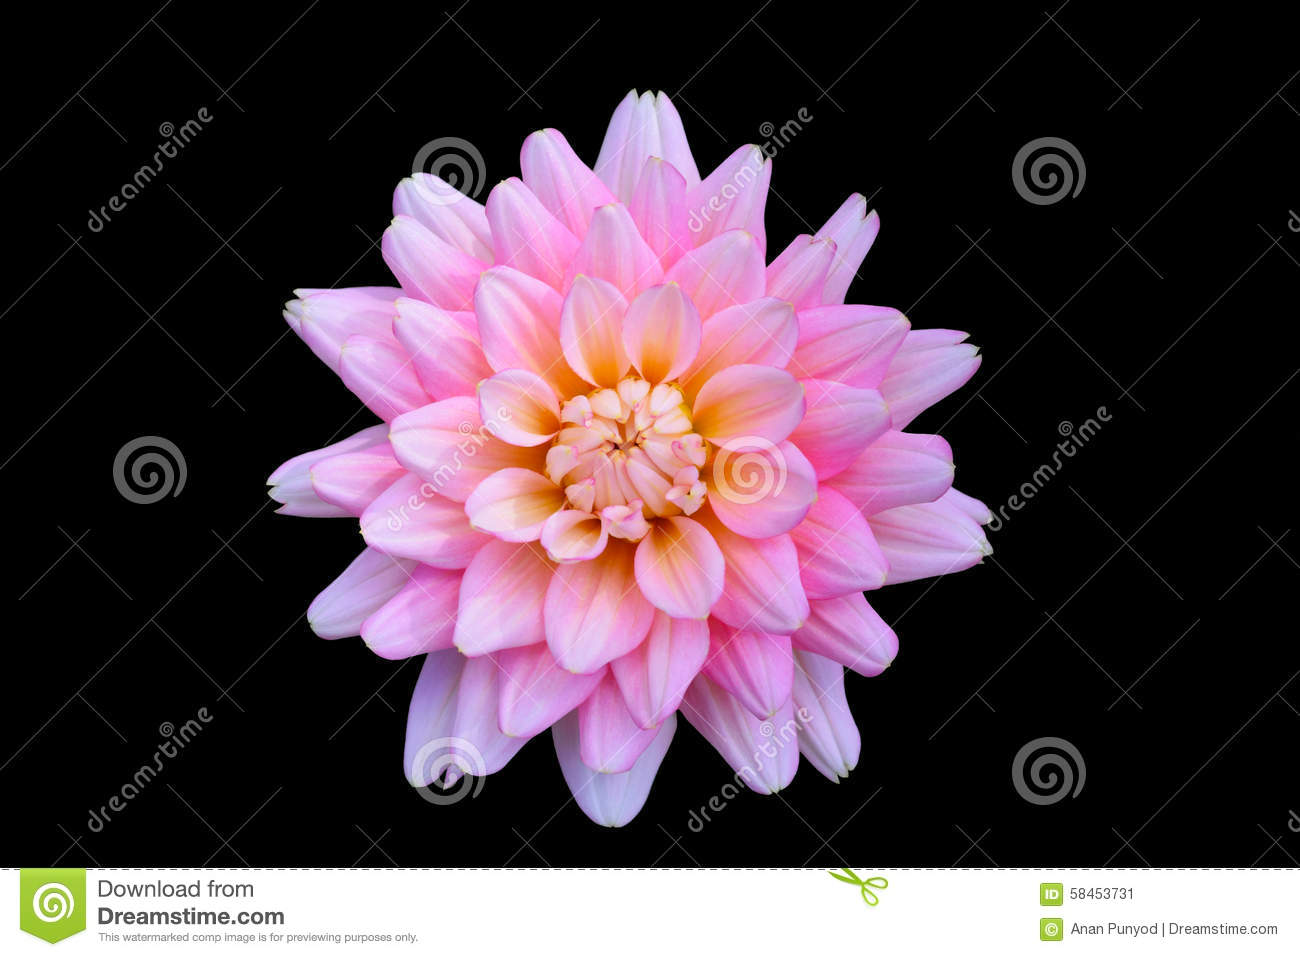 Beautiful floral pink dahlia flower on black background stock image beautiful floral pink dahlia flower on black background izmirmasajfo Gallery